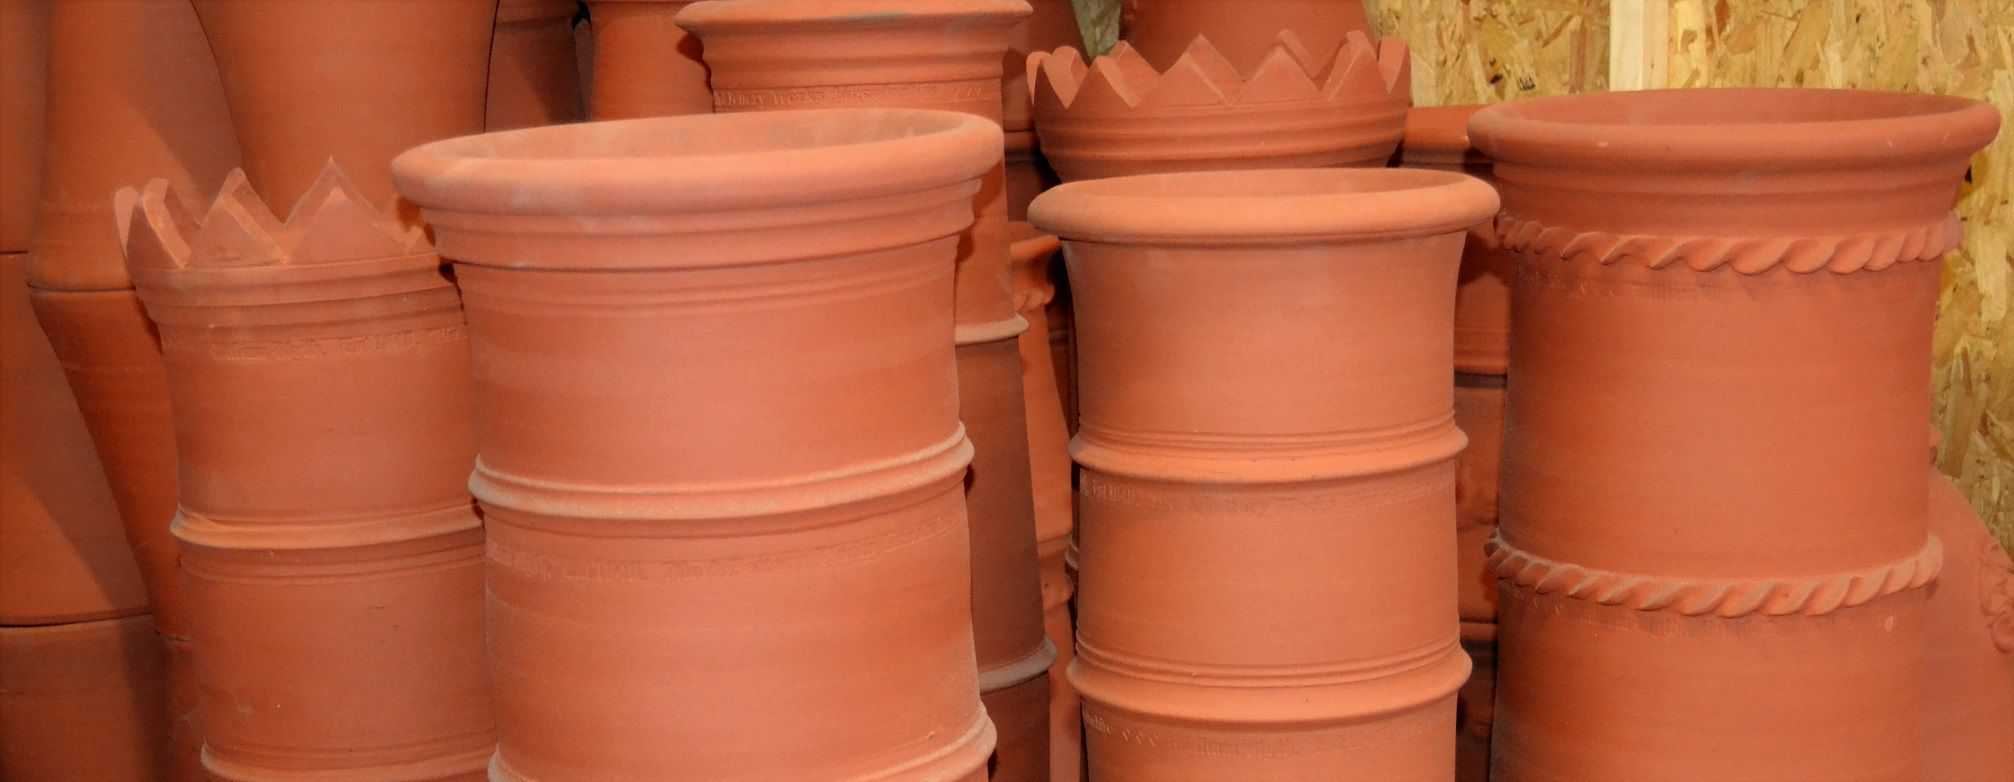 Chimney pots range